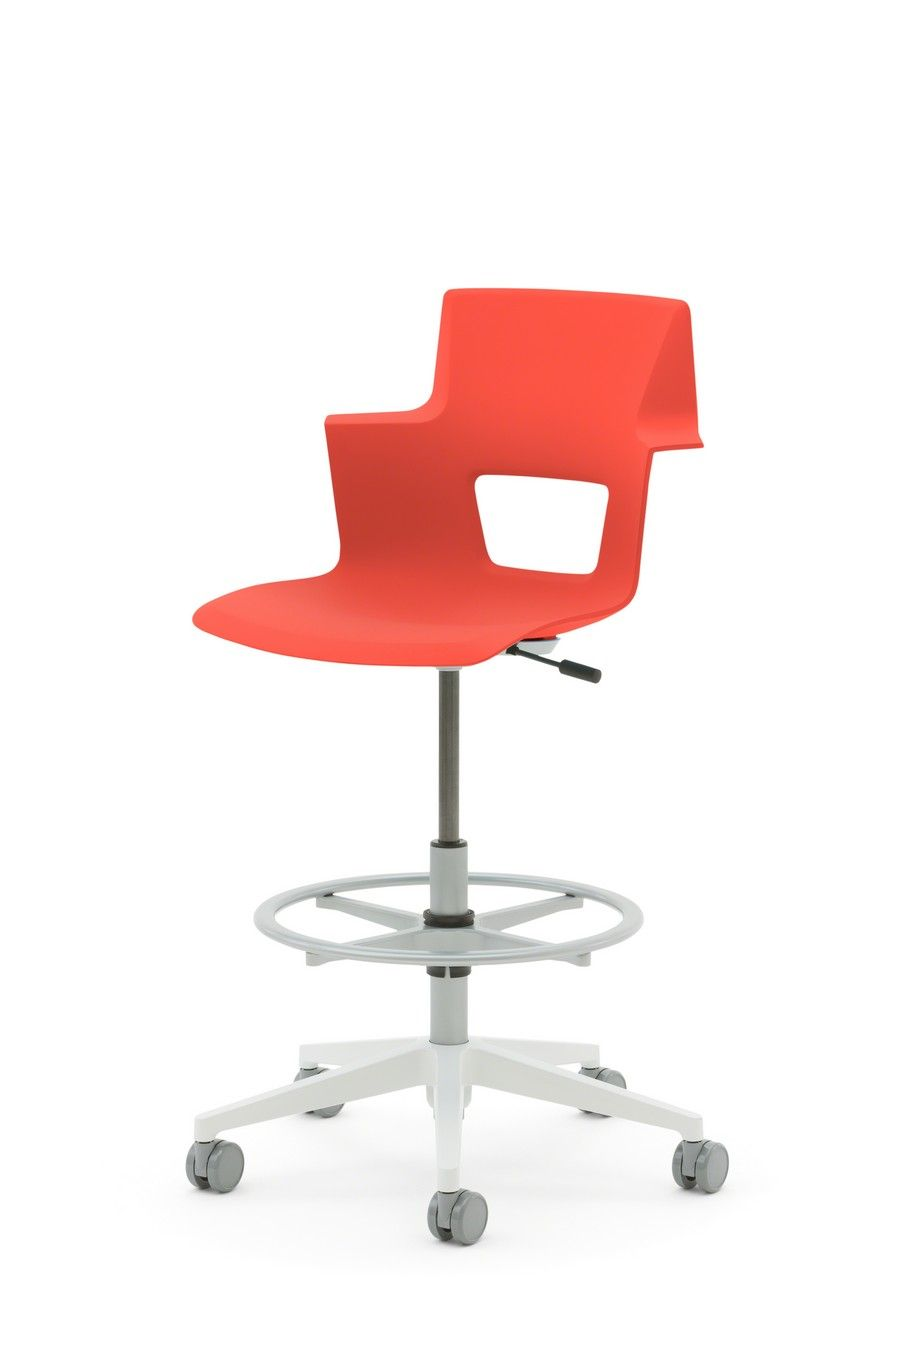 turnstone office furniture. beautiful turnstone with the modern worker is onthego steelcase brand turnstone created  shortcut stool and chair for shortterm sits that keep pace in todayu0027s office and turnstone office furniture g